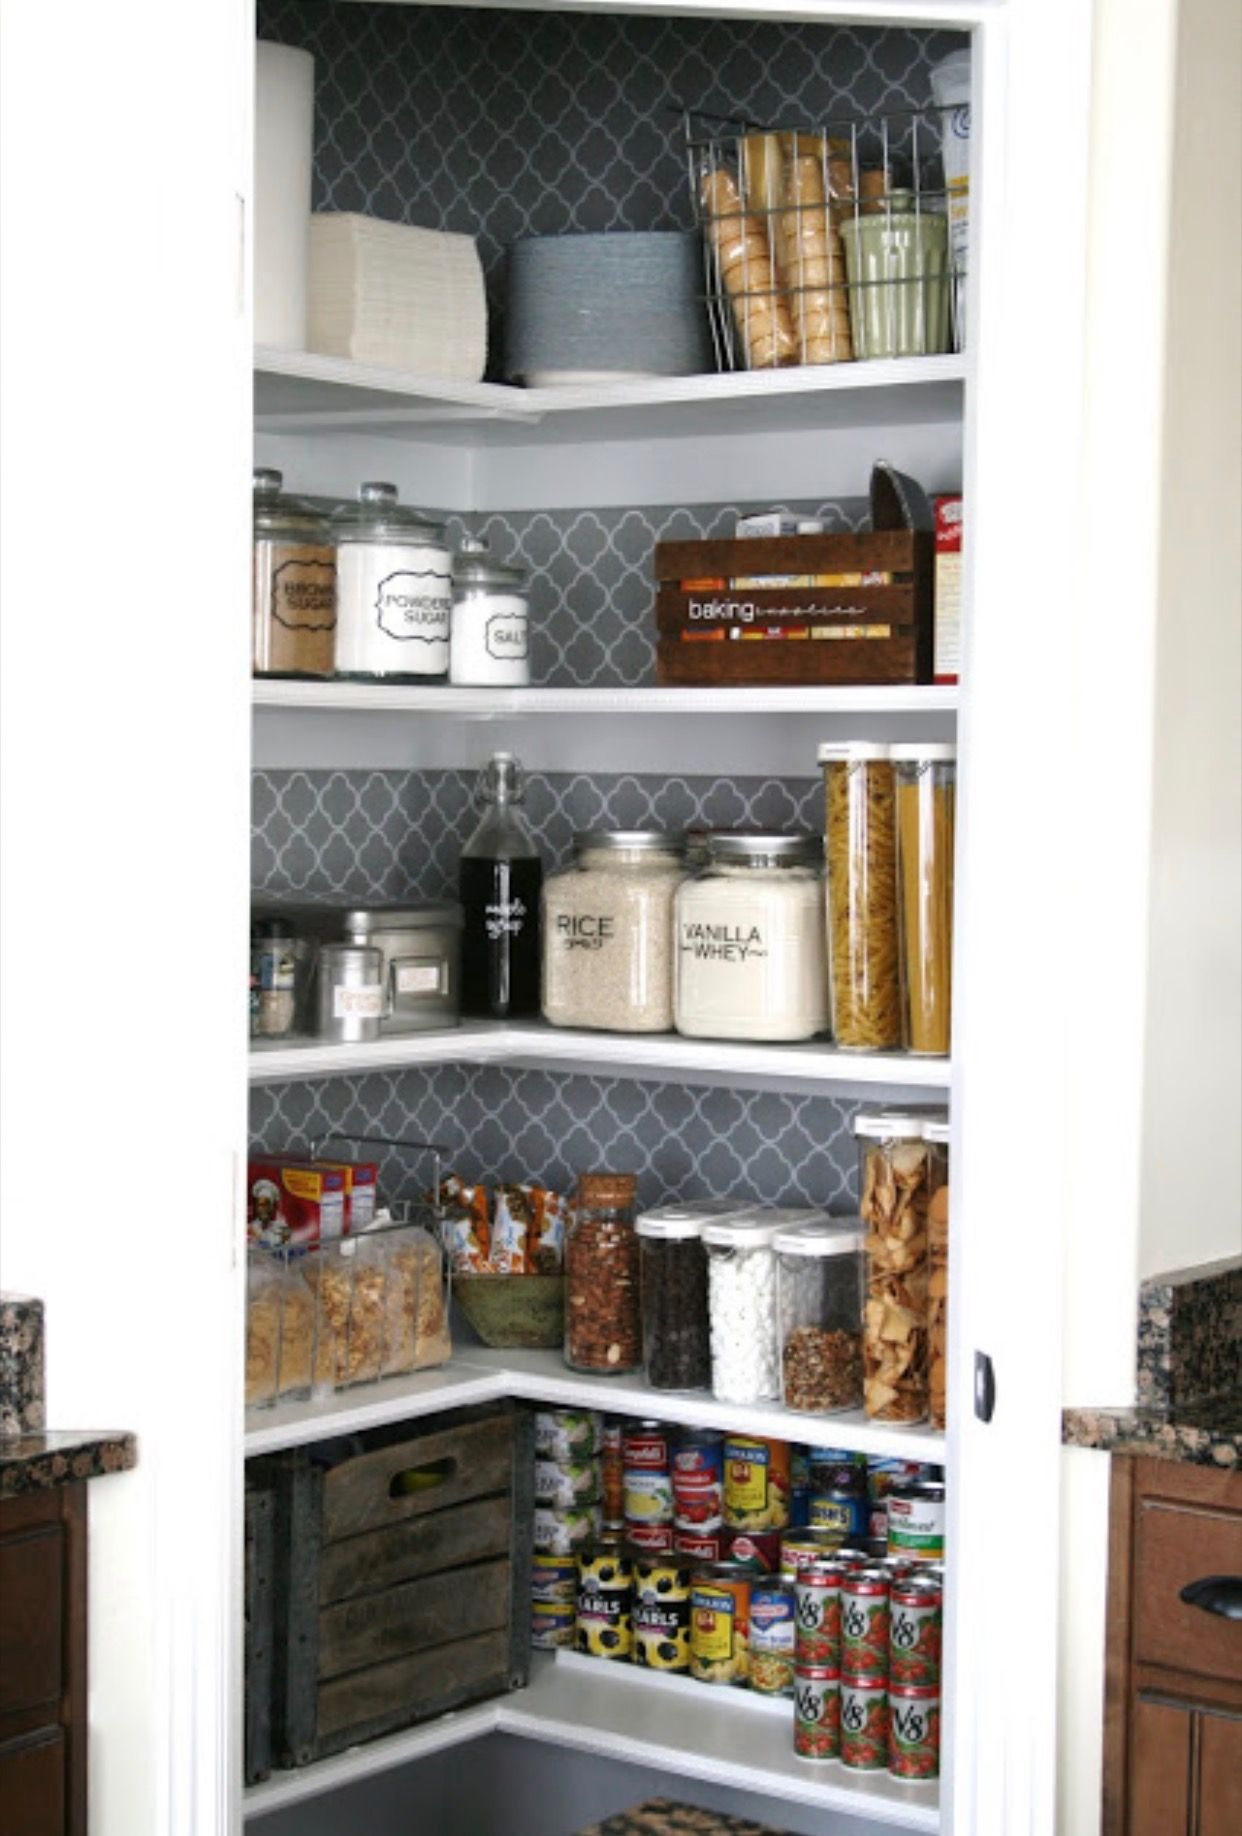 Pin by ruth justiniano on pantry organization pinterest pantry